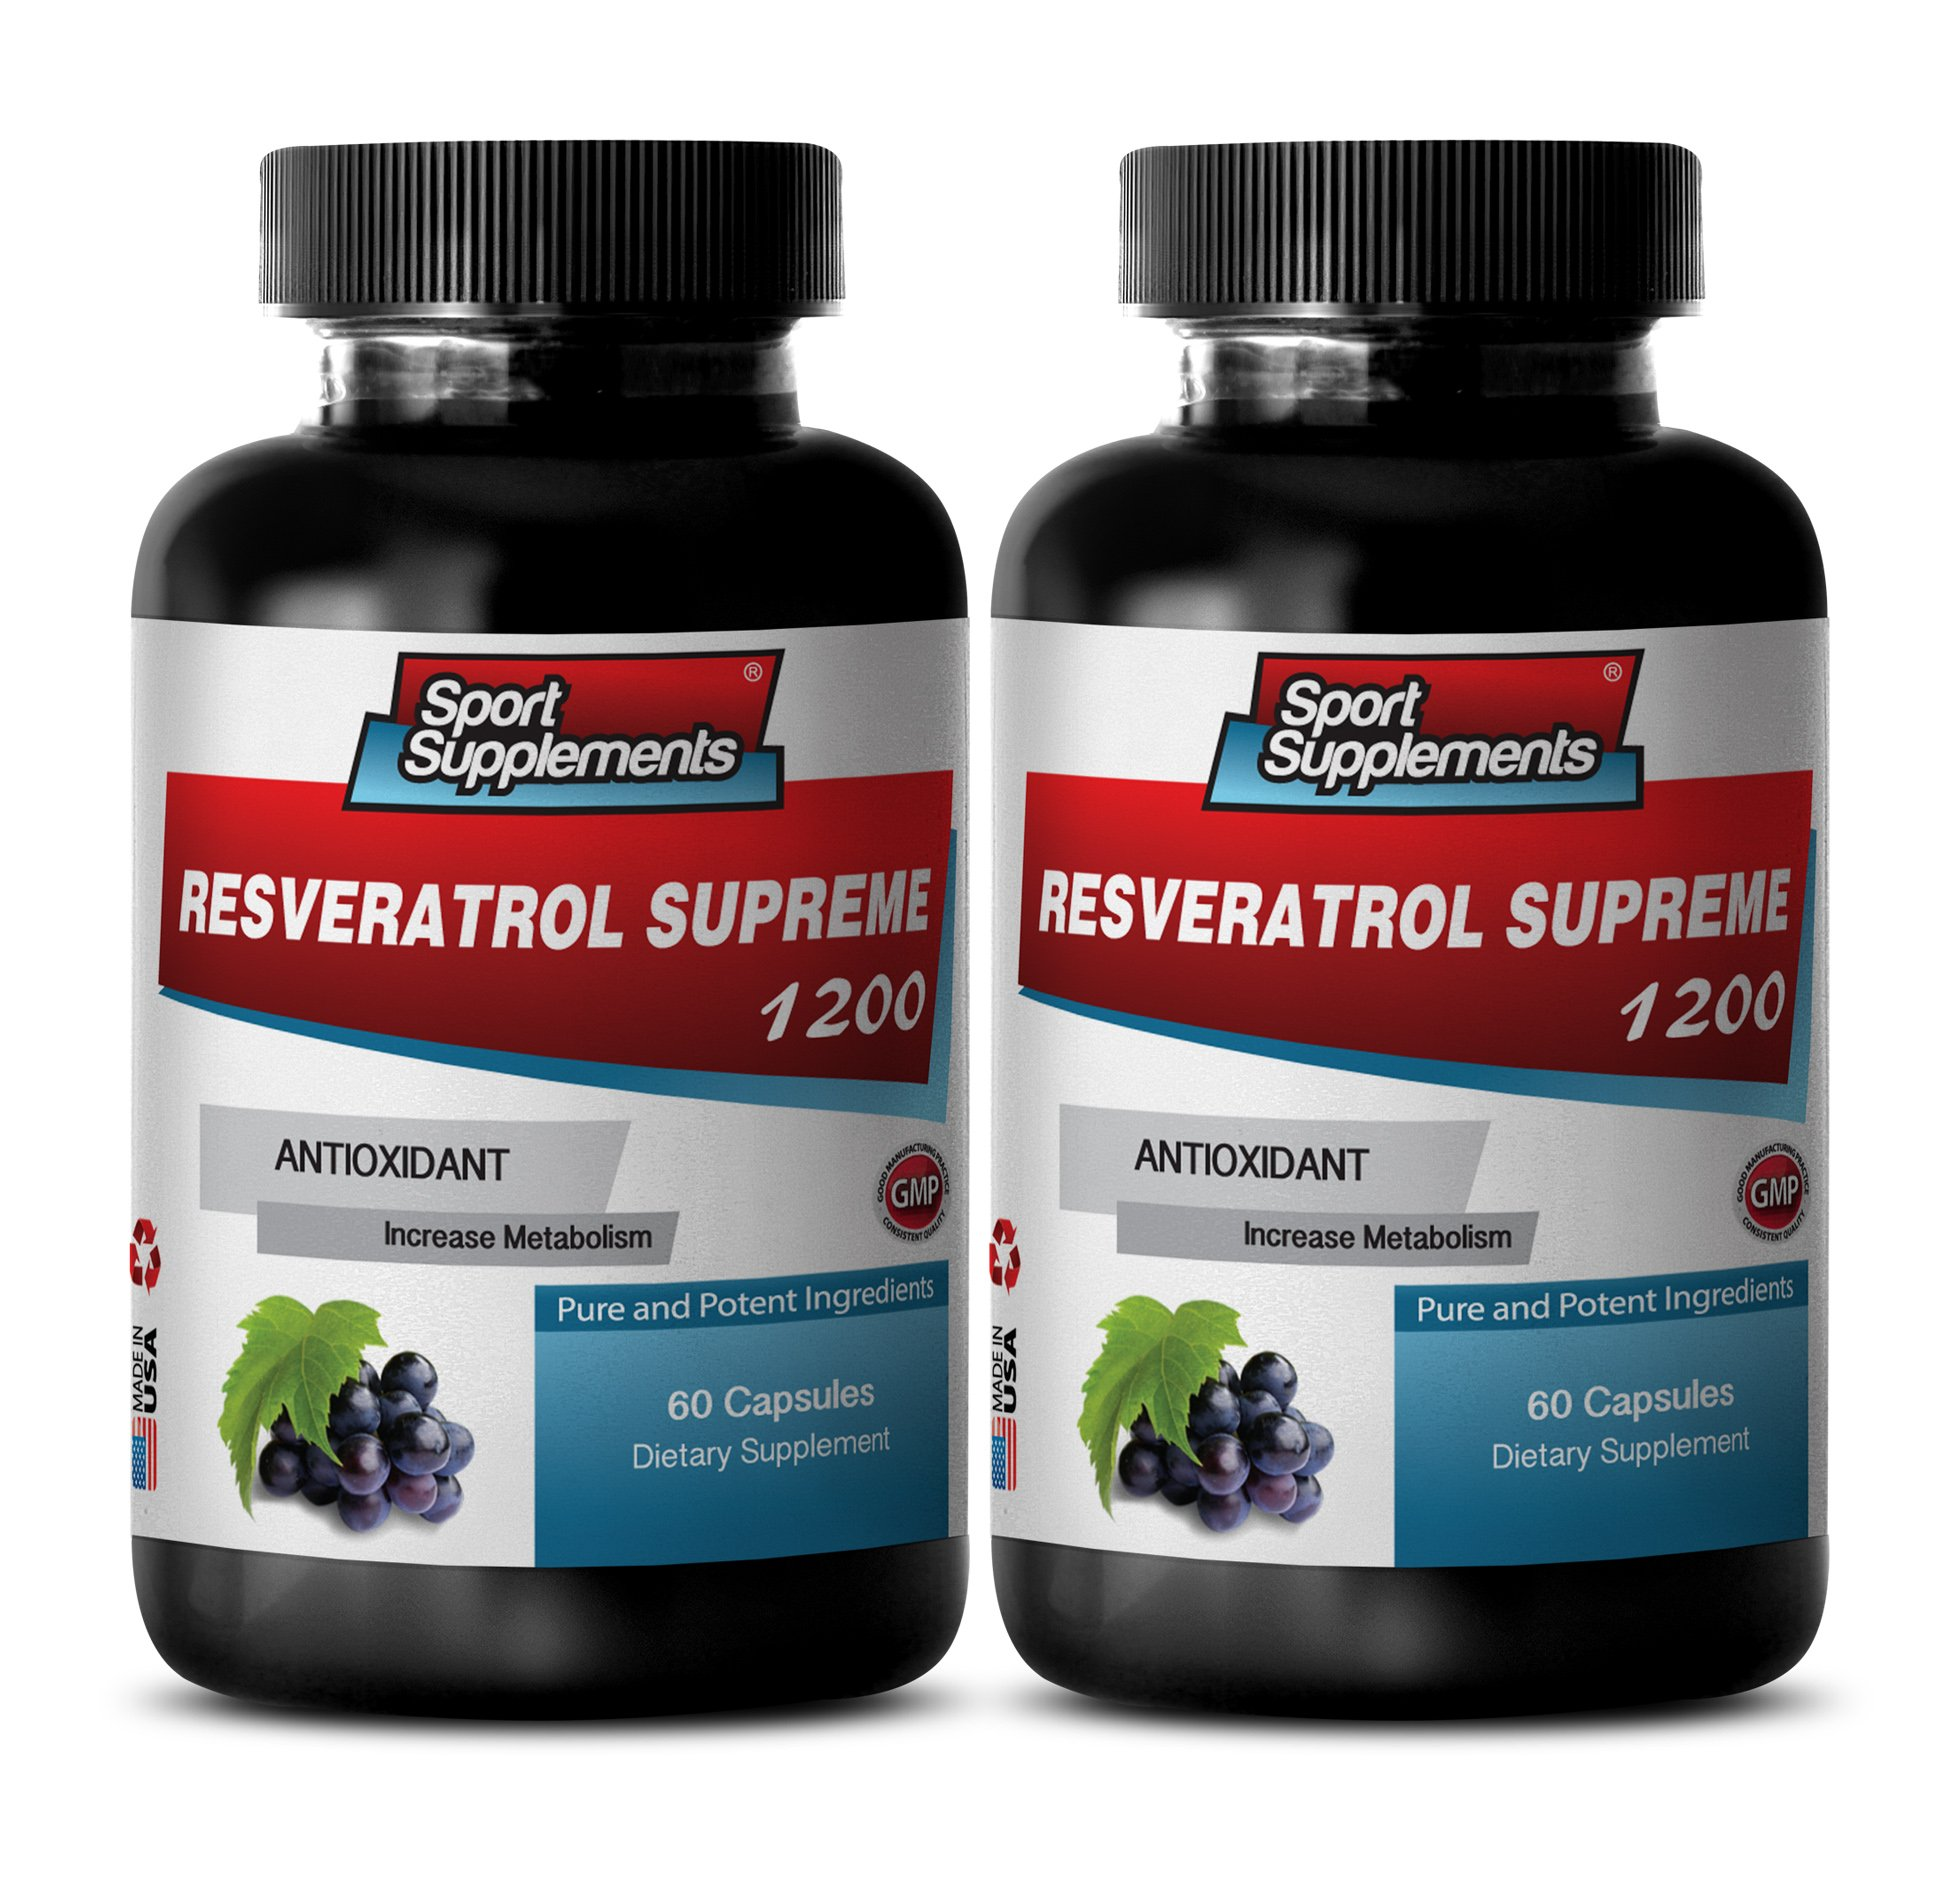 Herbal Supplement - Resveratrol Supreme 1200mg Maximum Strength Plus 1200 Red Wine Supplements(2 Bottles)